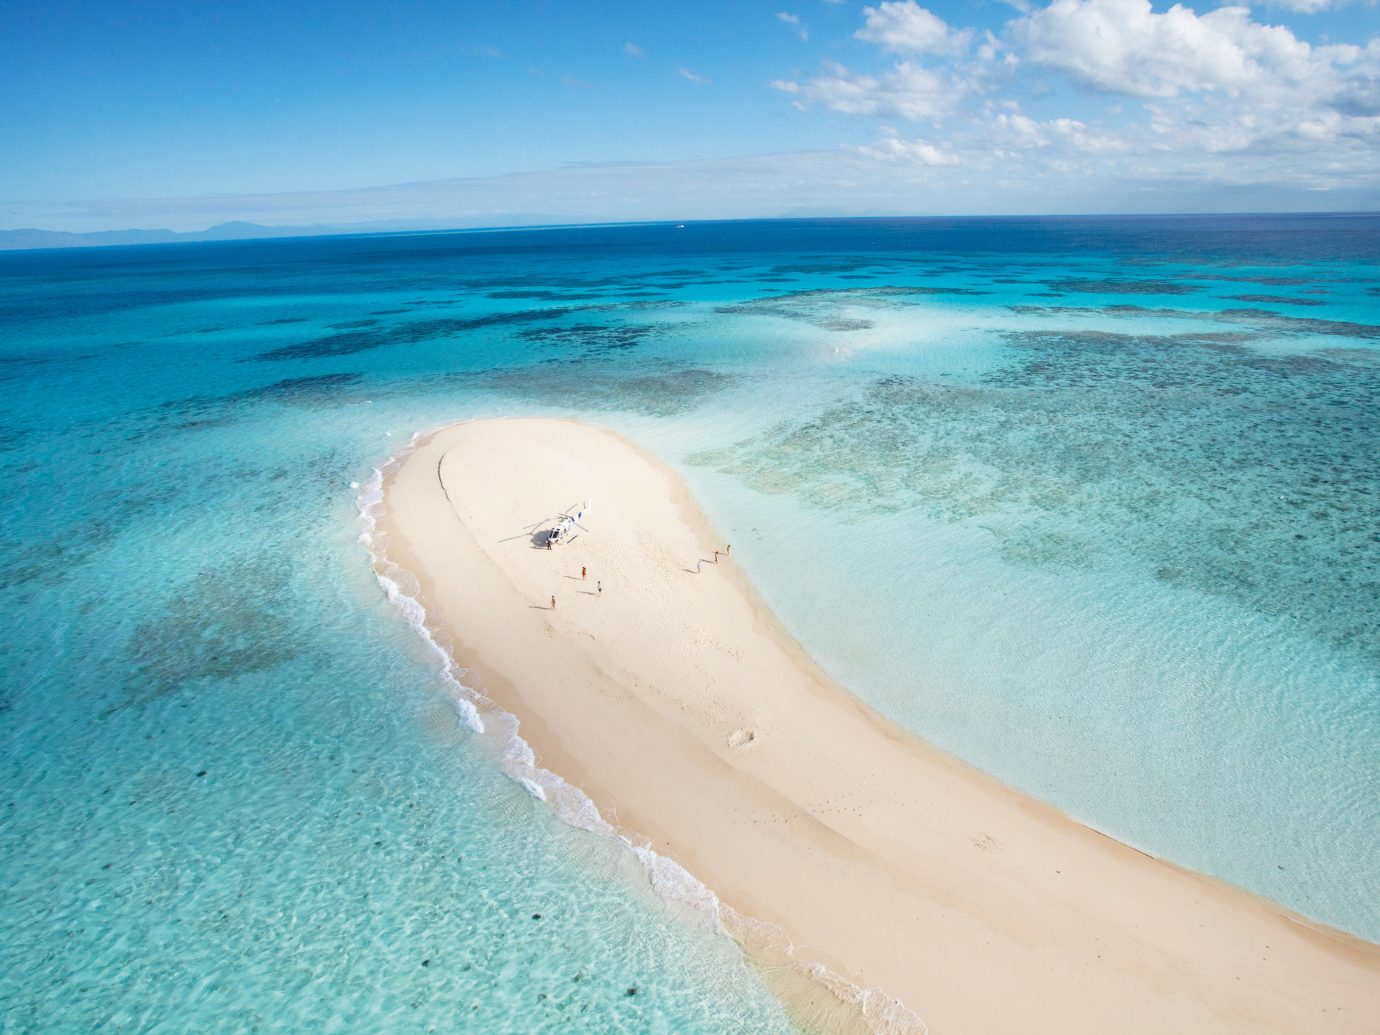 Offbeat Trip Ideas water sky Nature Ocean Sea wind wave blue outdoor wave shore Beach horizon body of water Coast sand vacation caribbean cape surfing equipment and supplies reef swimming